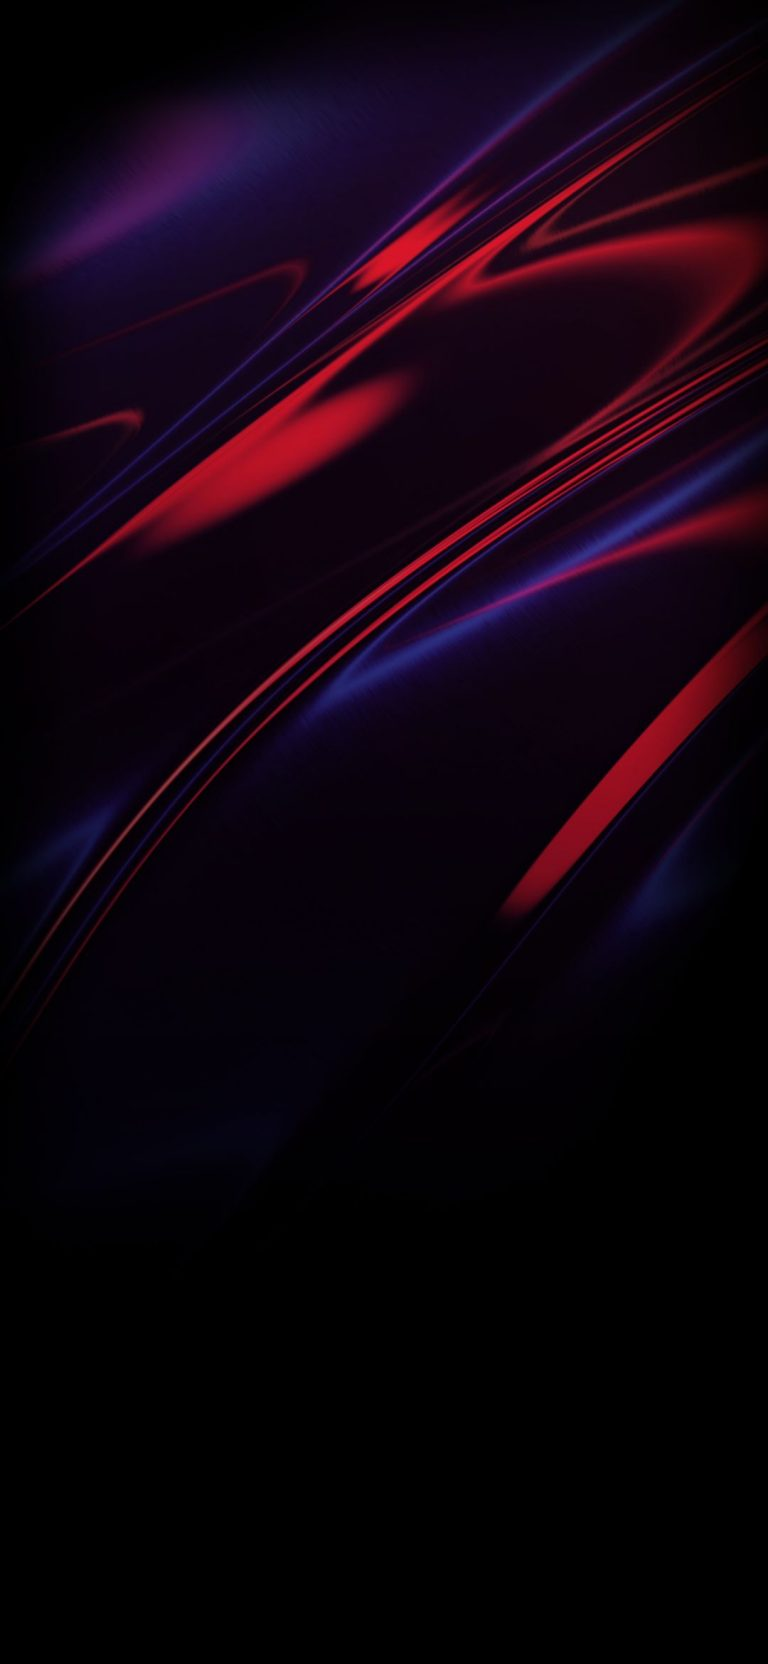 ZTE Nubia Red Magic 3 Stock Wallpaper 01 1080x2340 768x1664